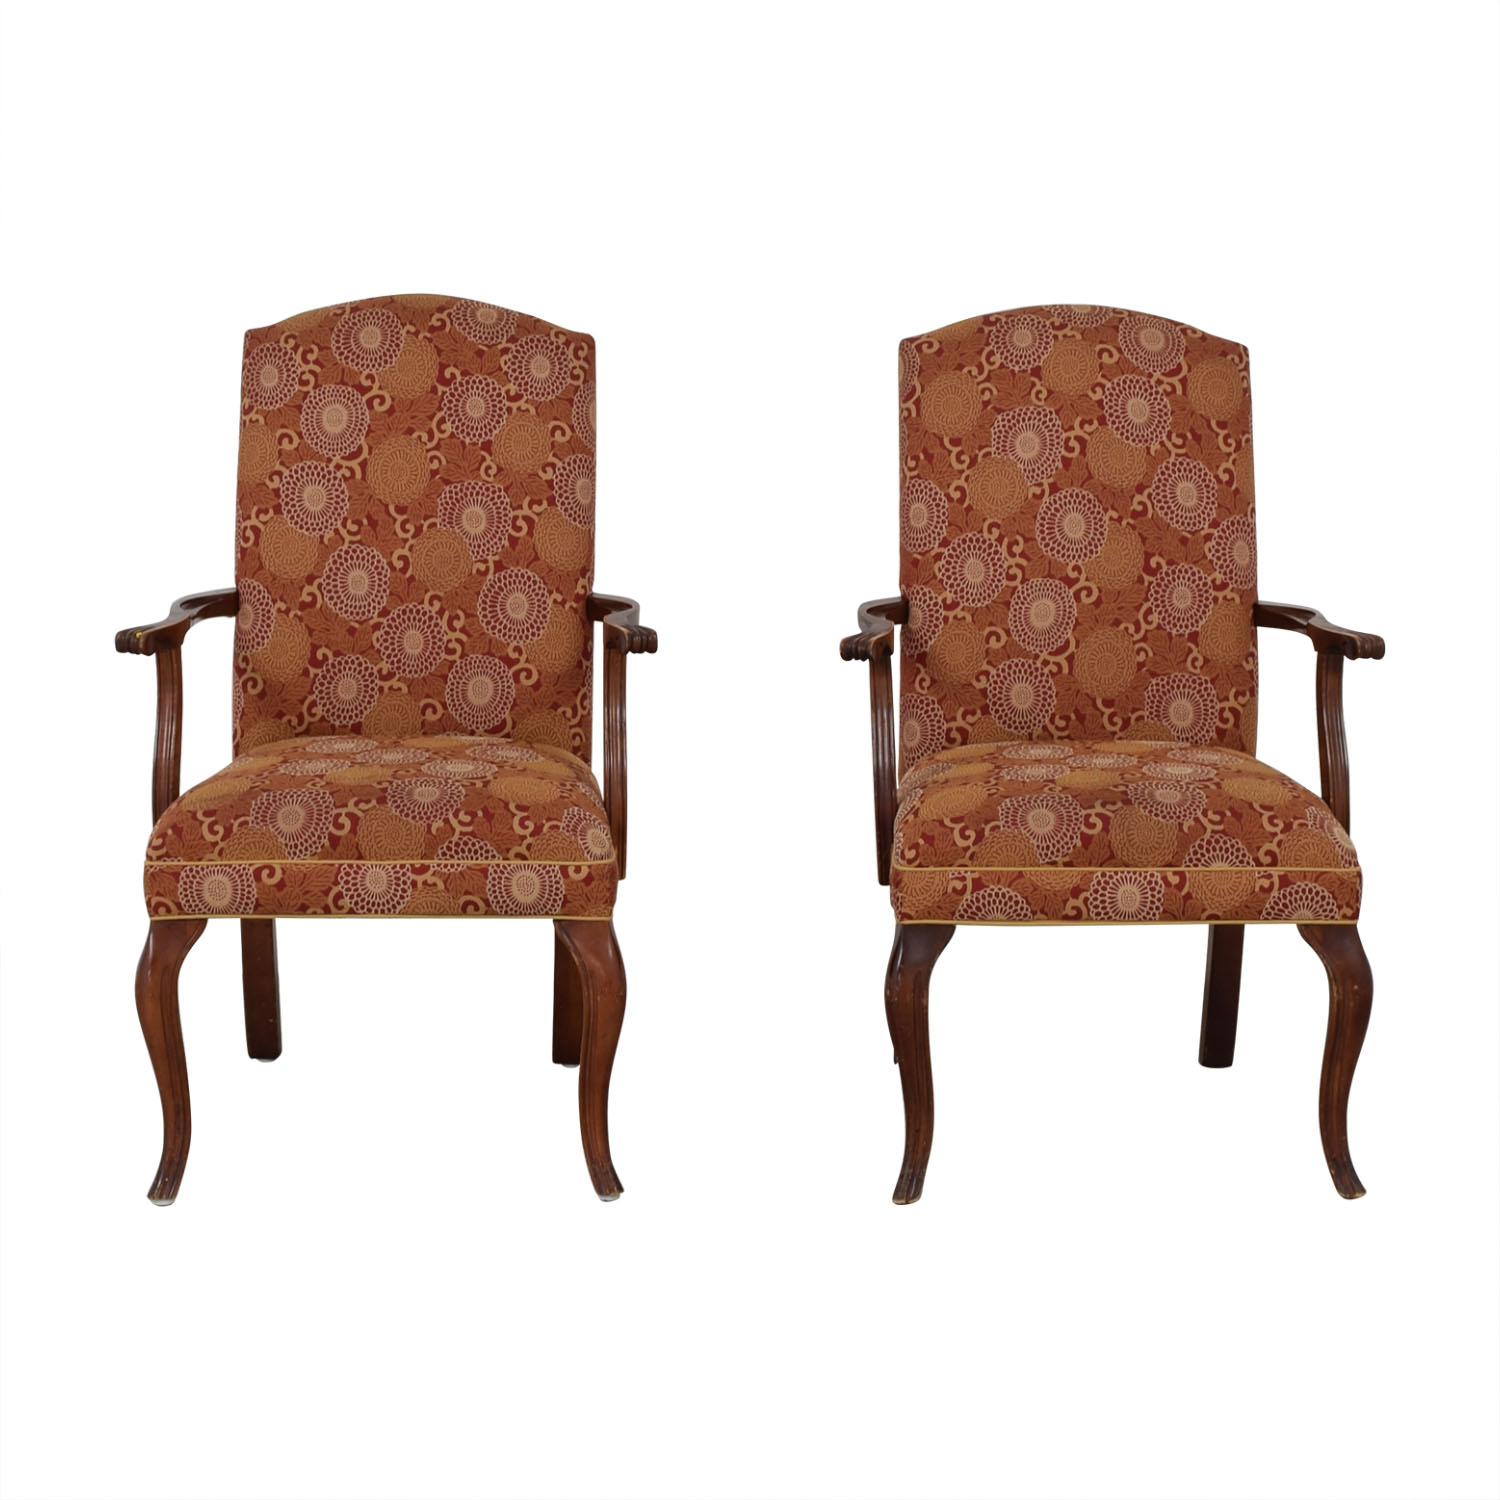 Ethan Allen Ethan Allen Patterned Armchairs on sale